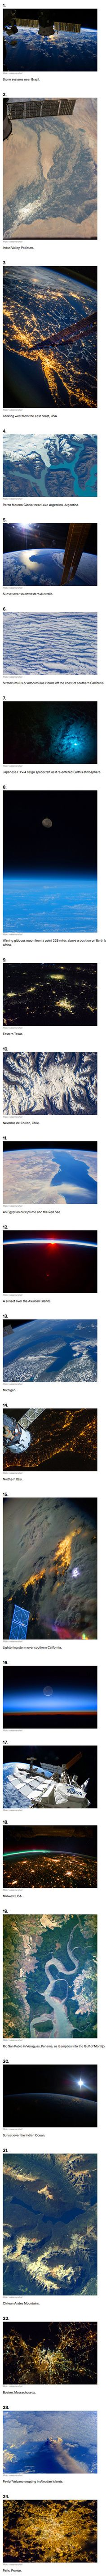 Here are some mind-blowing views of Earth captured by astronauts aboard the International Space Station.